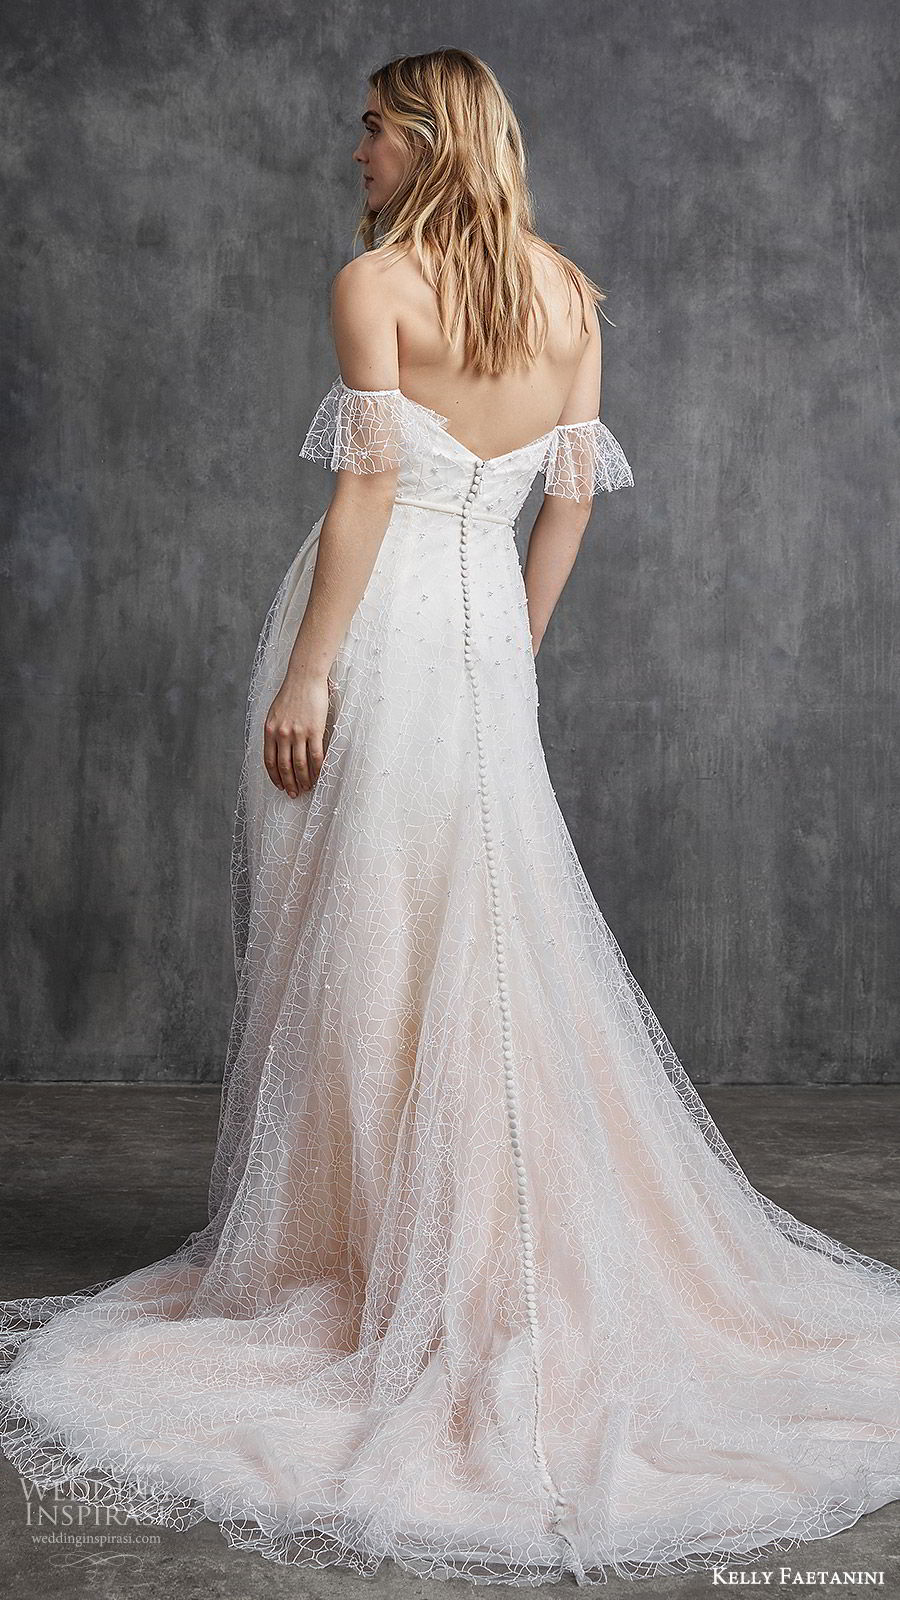 kelly faetanini spring 2020 bridal off shoulder illusion flutter sleeves sweetheart fully embellished a line ball gown wedding dress (7) ombre blush chapel train bv